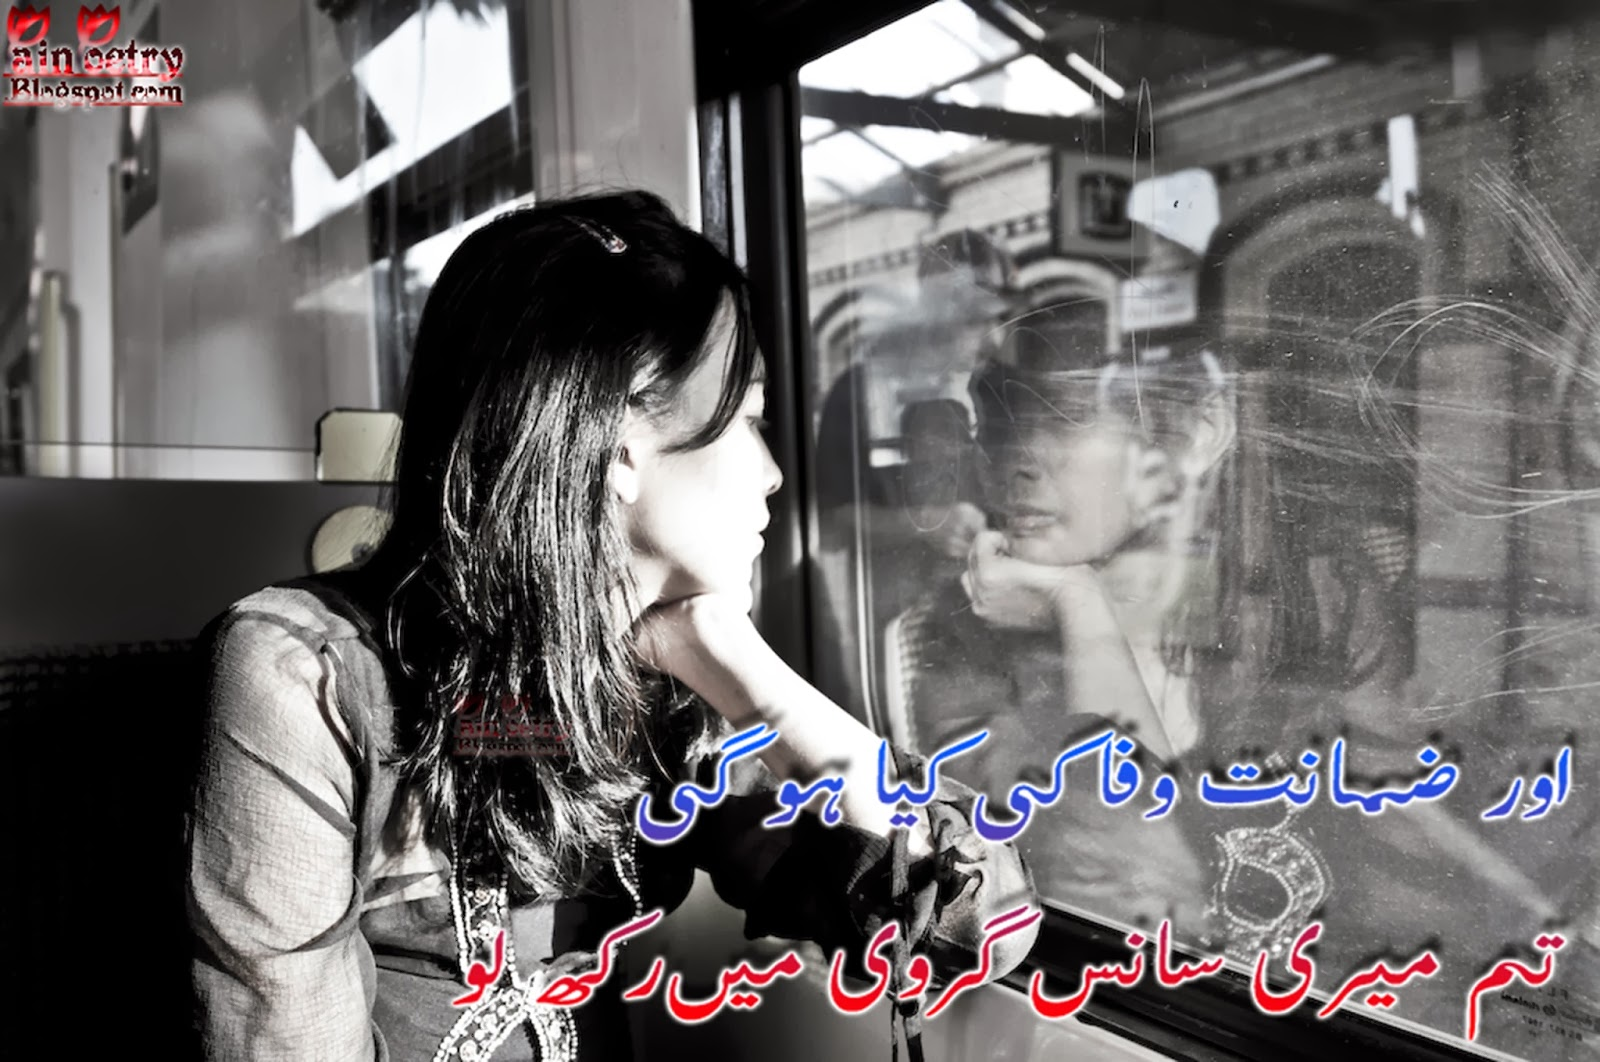 Sad-Girl-In-Love-Poetry-Oor-Zmanat-Wfa-Ki-Kia-Hogi-Tum-Meri-Sans-Girvi-Mein-Rakh-Lo-Image-HD-Wide